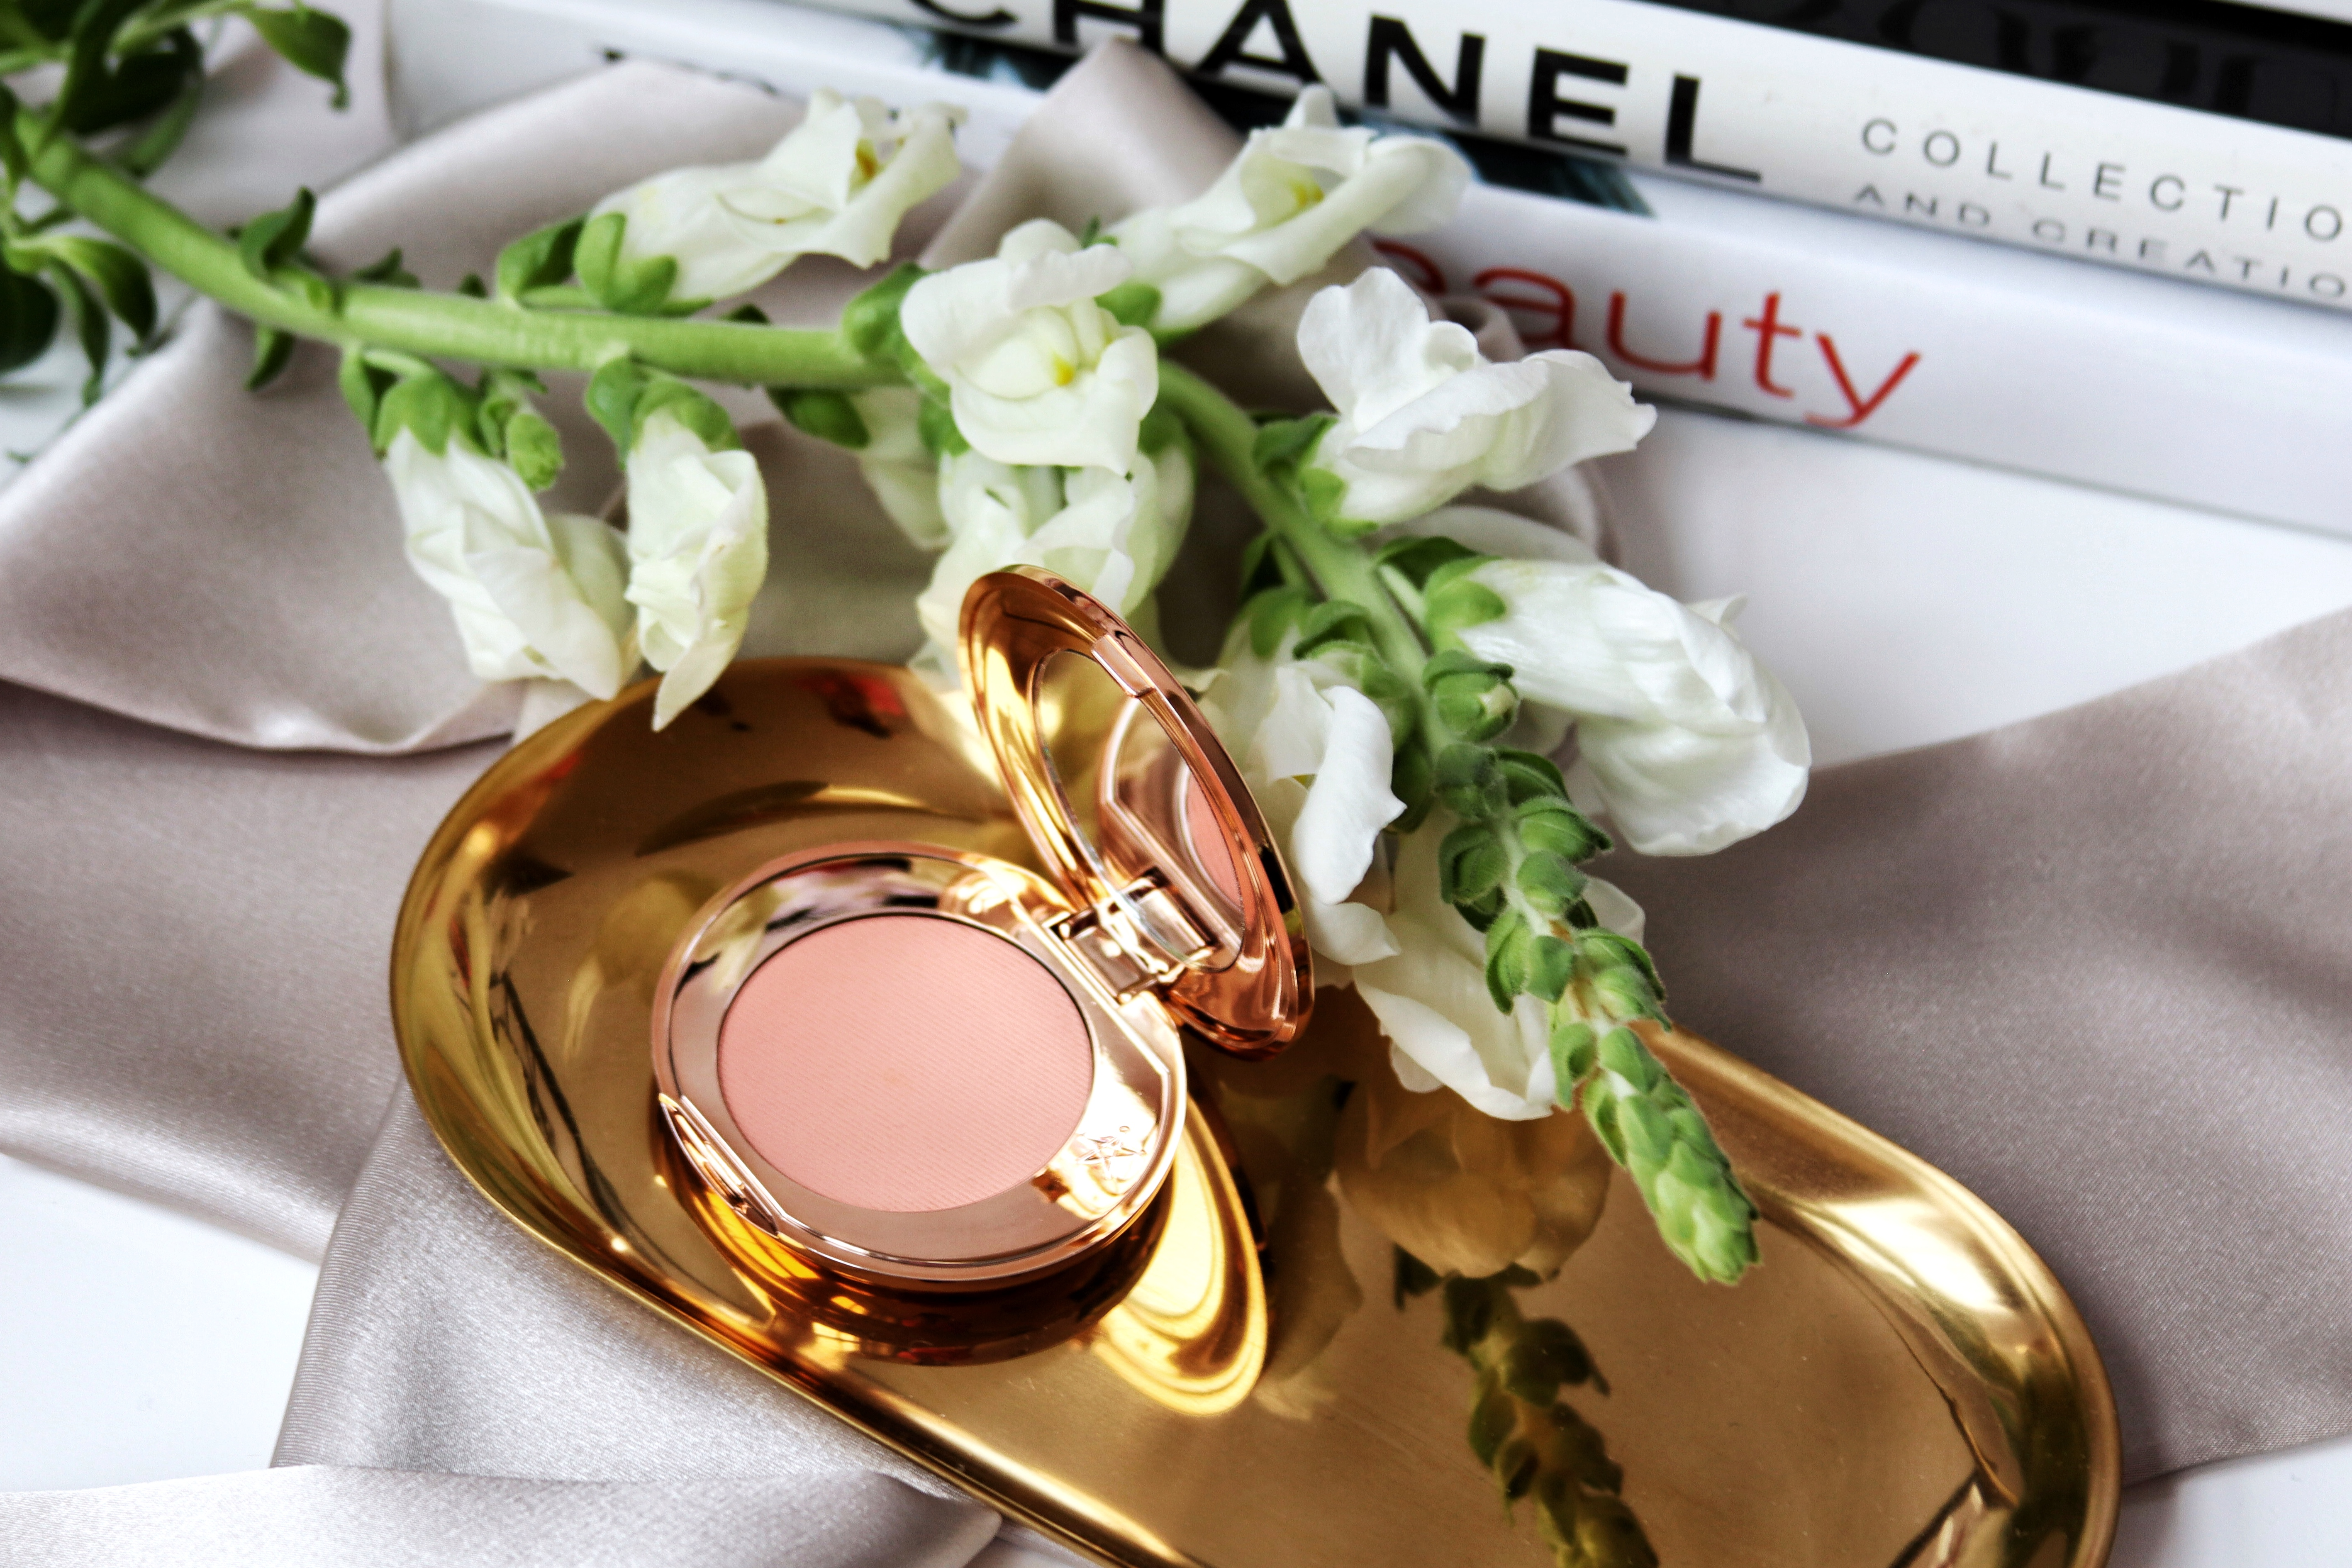 Image of makeup by Charlotte Tilbury on gold tray with books in the background. Makeup being reviewed is called 'Magic Vanish'.